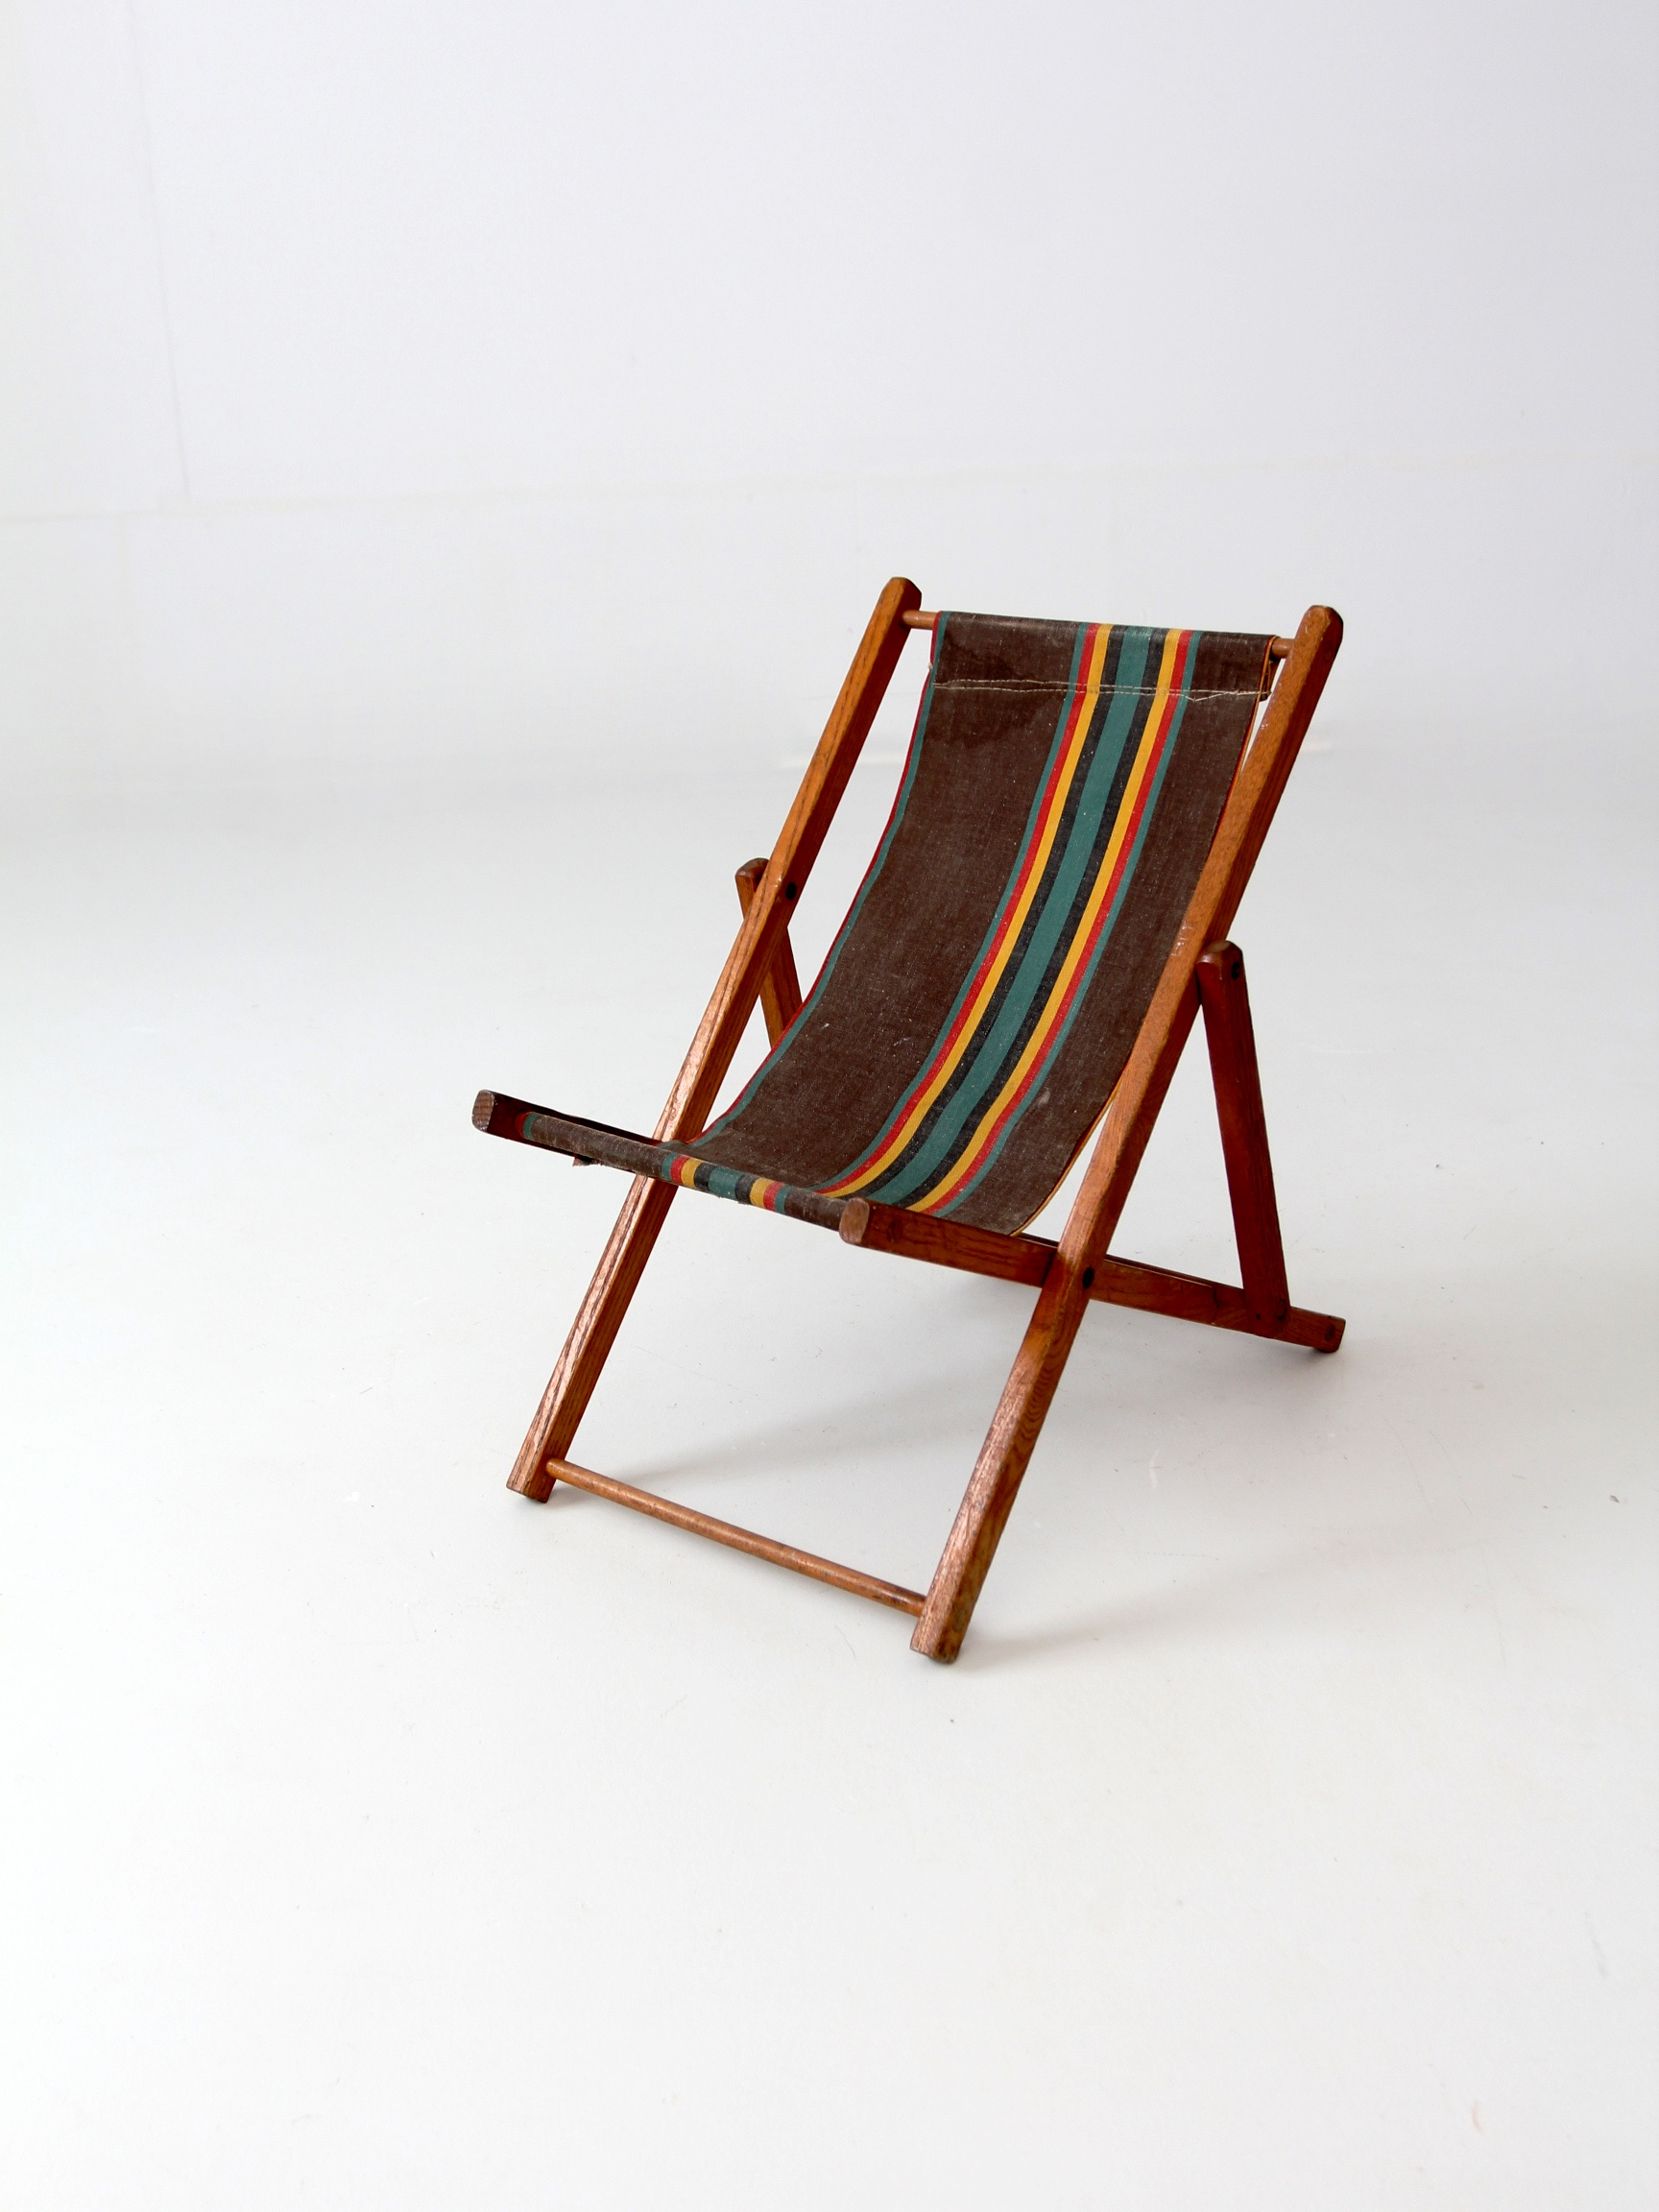 A Vintage 1950s Childrenu0027s Deck Chair. The Classic Wood Frame Folding Chair  Features A Striped